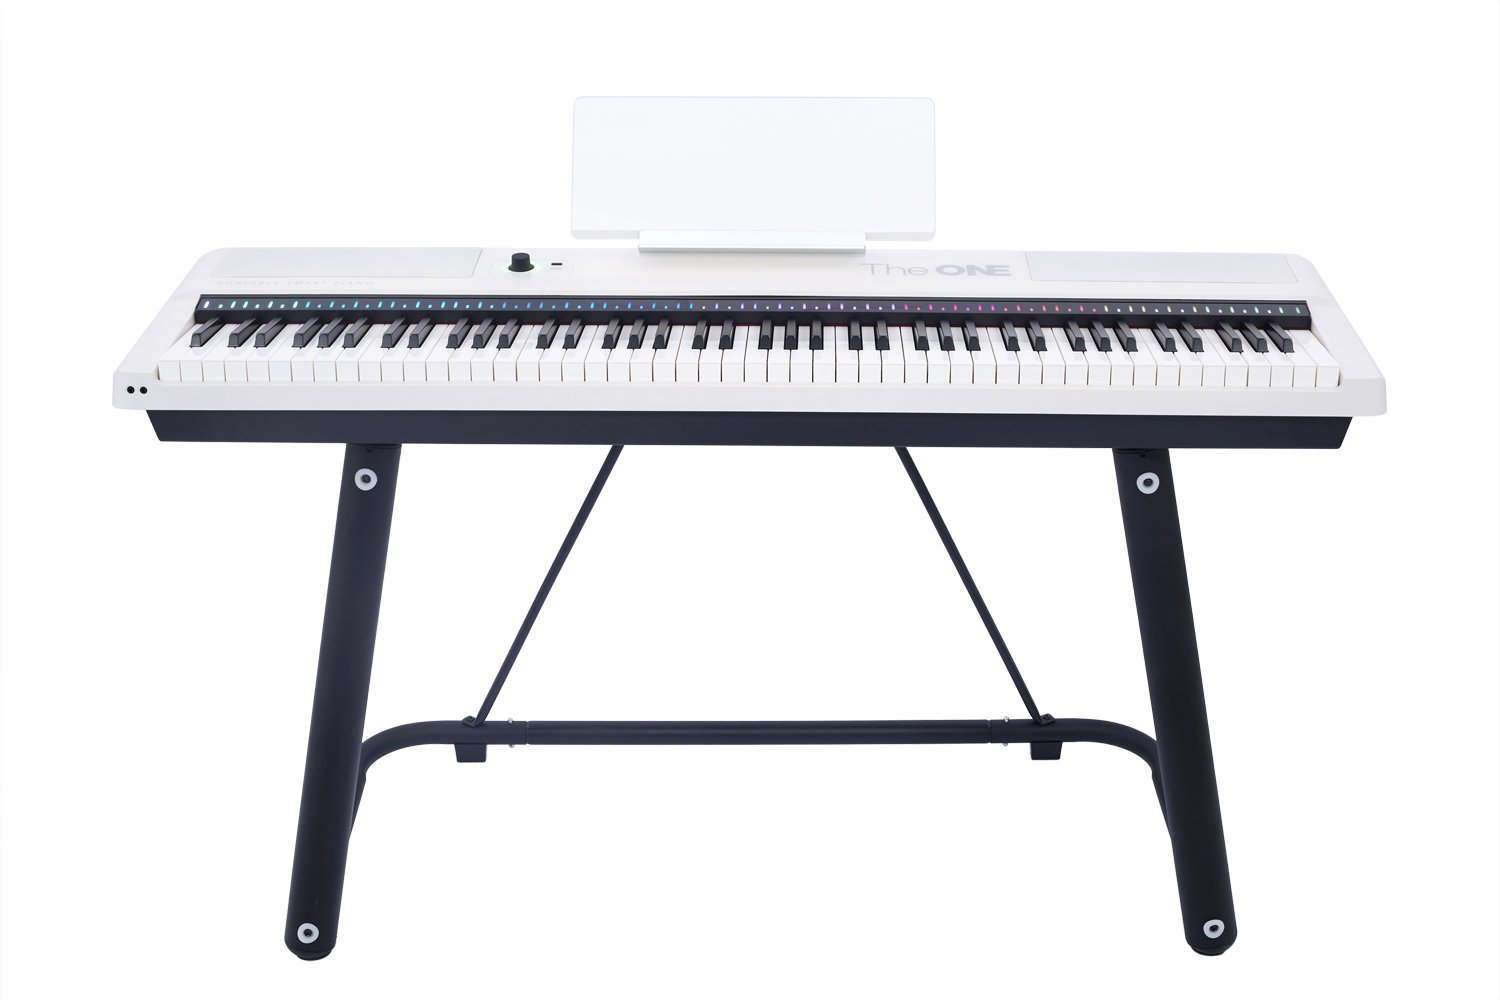 The ONE Music Group 88-Key Portable Piano Electronic MIDI Keyboard Weighted Action Digital Piano, Grace White by The ONE Music Group (Image #3)